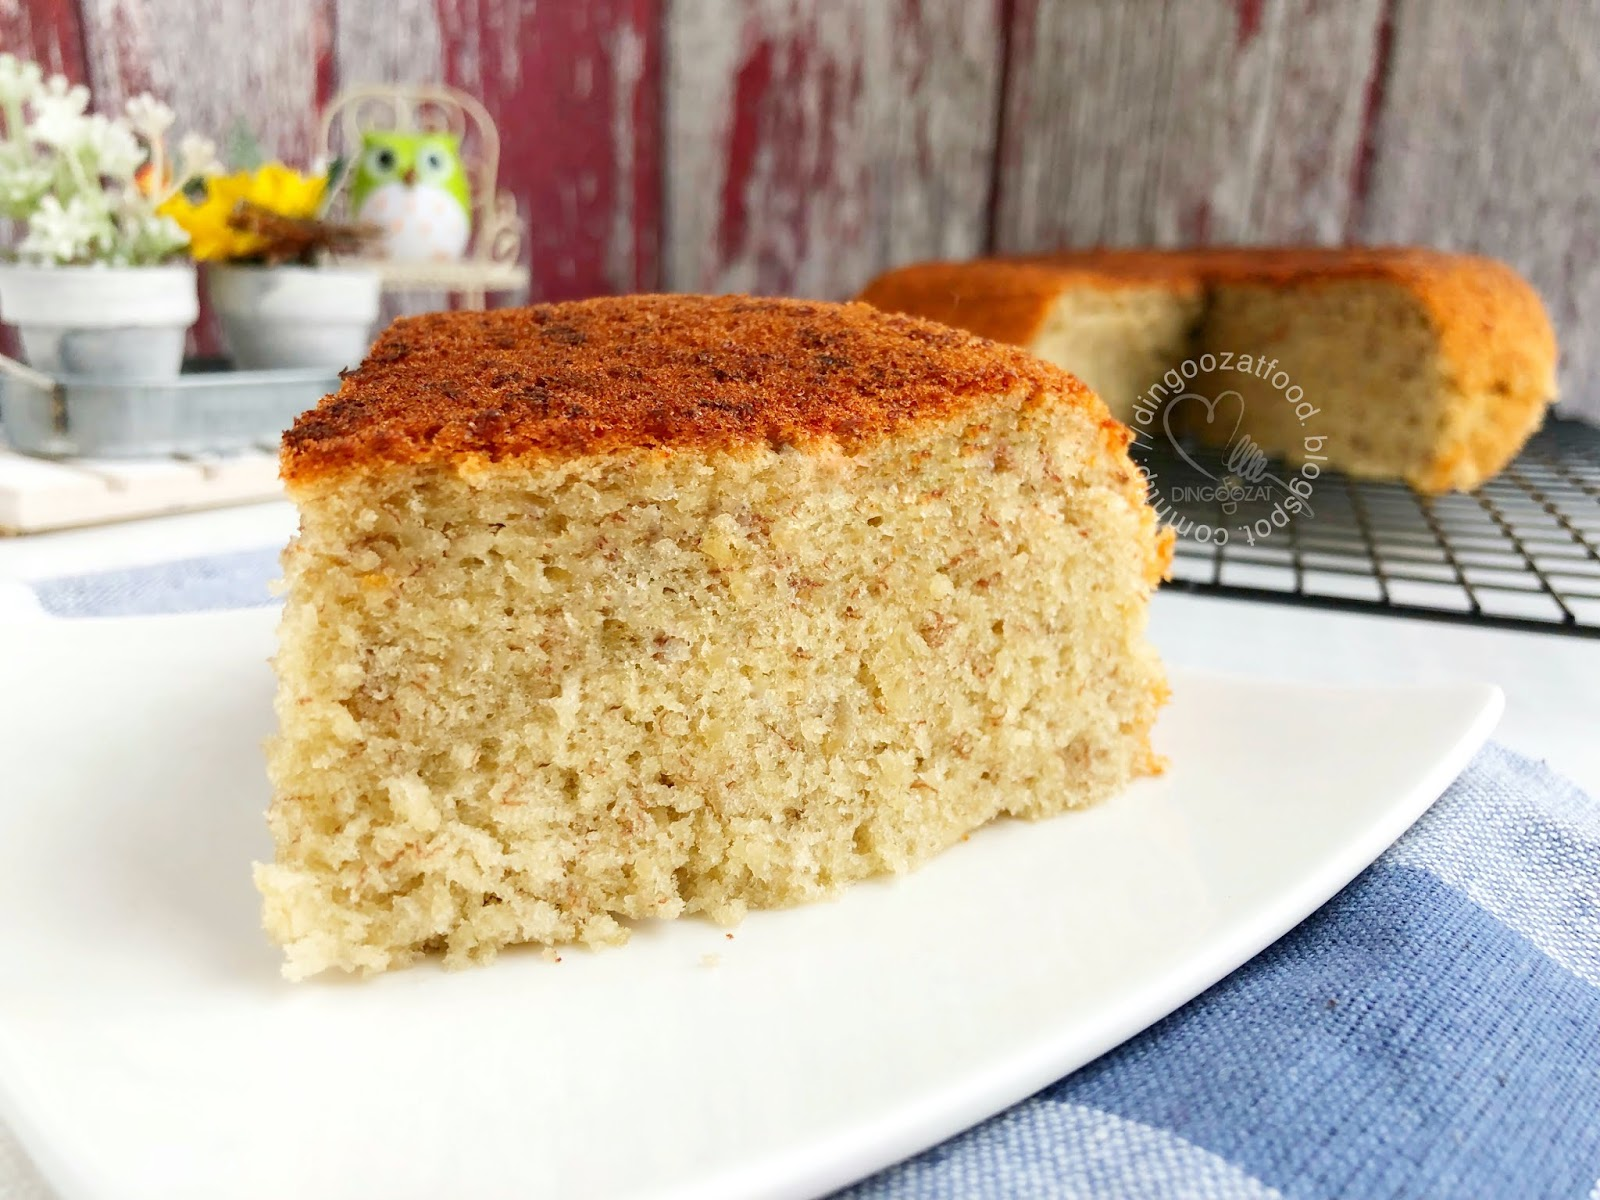 This Is My All Time Favorite Banana Cake Recipe, Made Completely